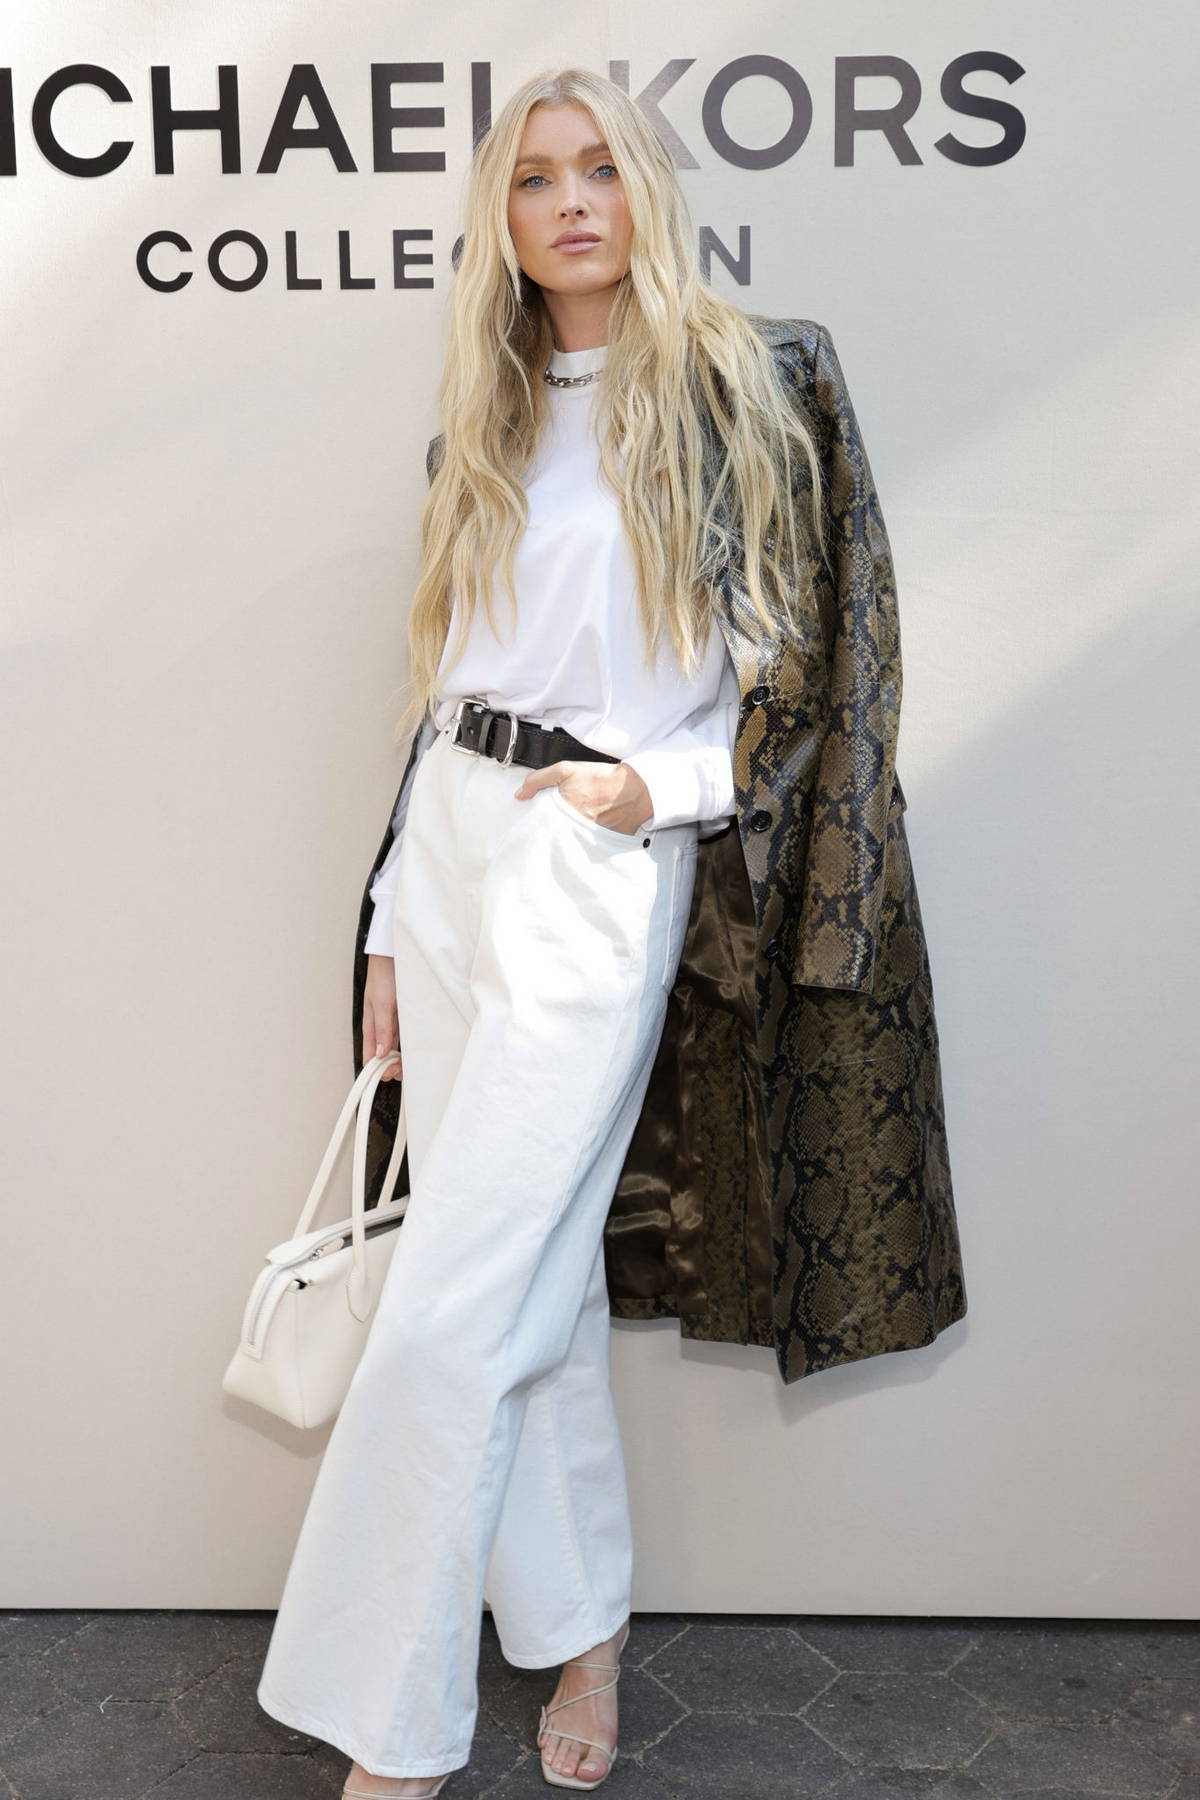 Elsa Hosk attends the Michael Kors SP22 fashion show during New York Fashion Week in New York City